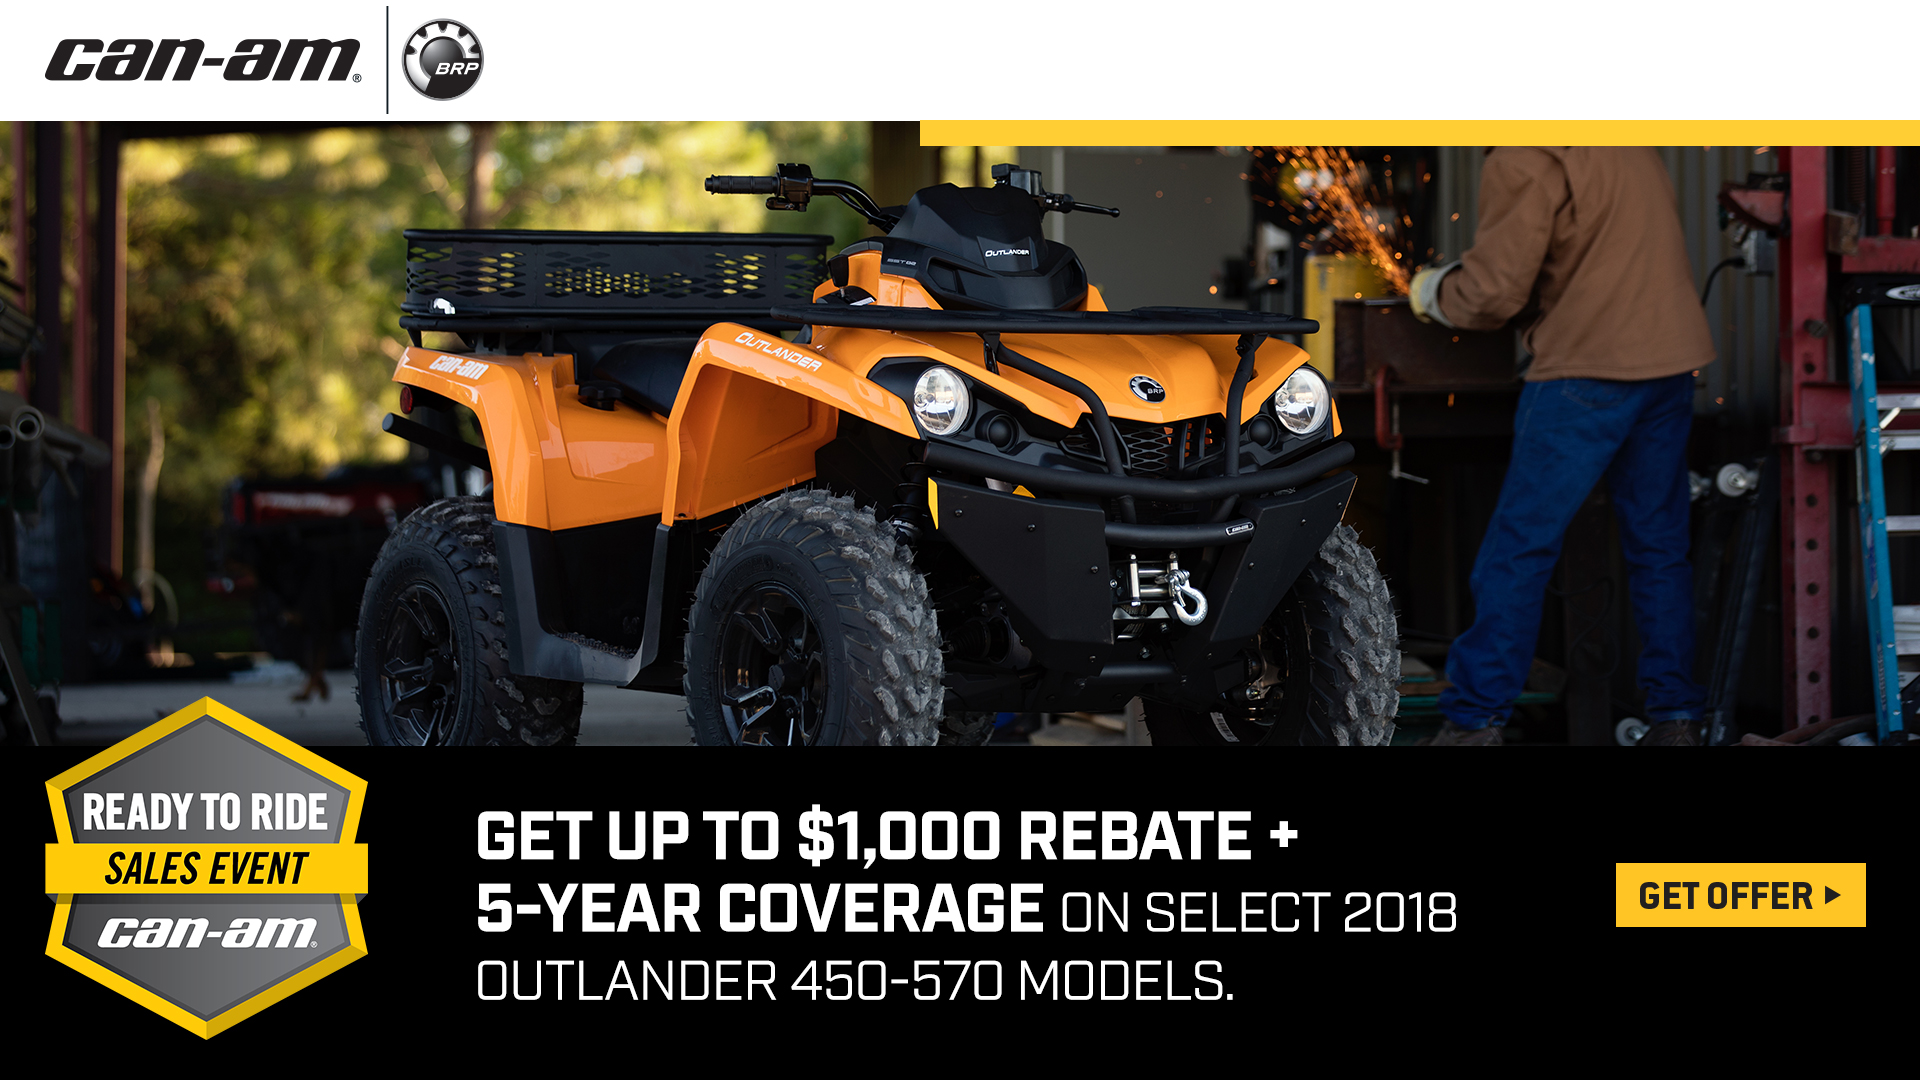 Can_Am_Off_Road_Ready_to_Ride__030719104830.jpg